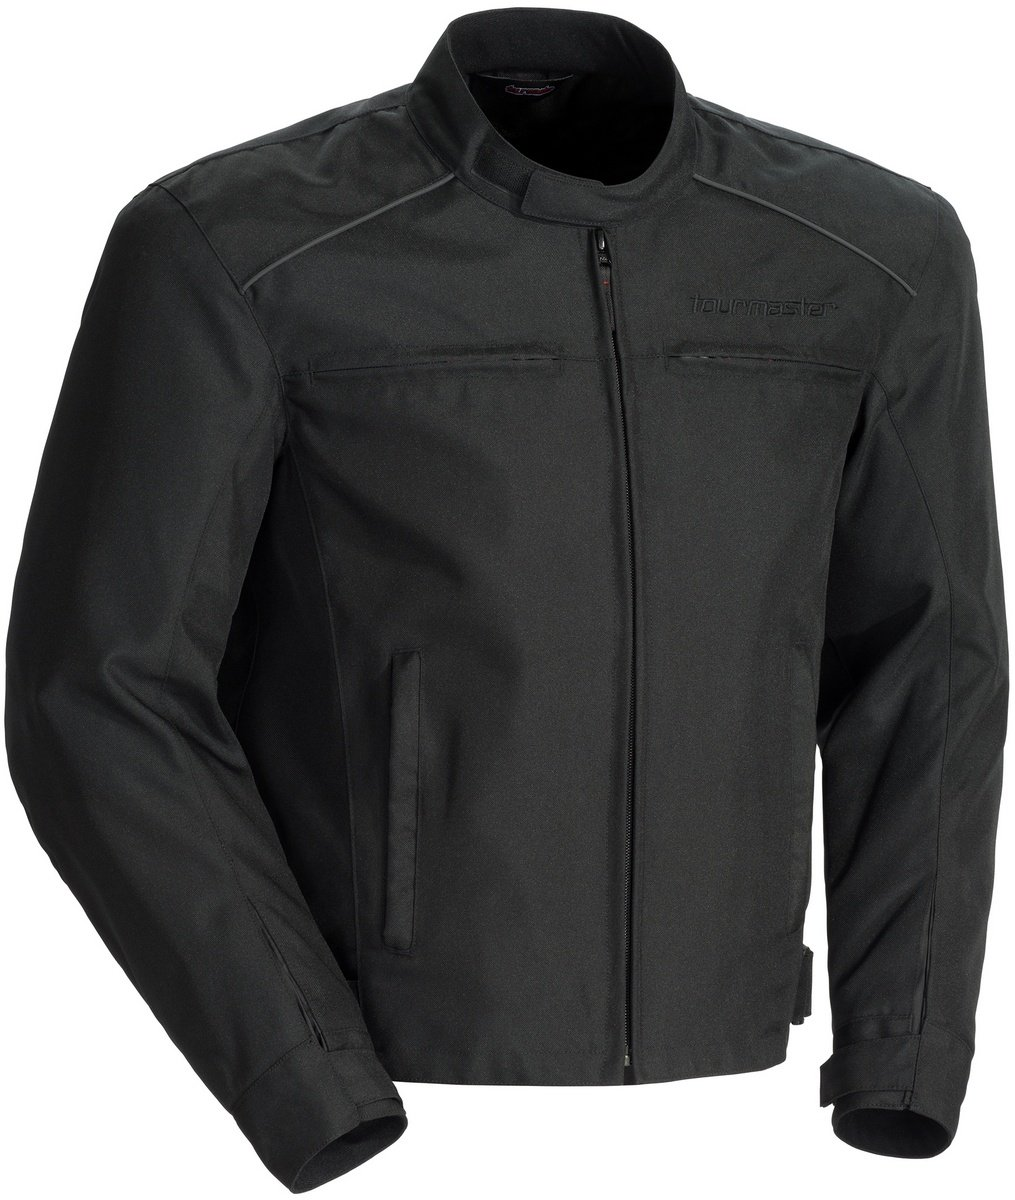 TourMaster Men's Koraza Jacket (Black, XX-Large)